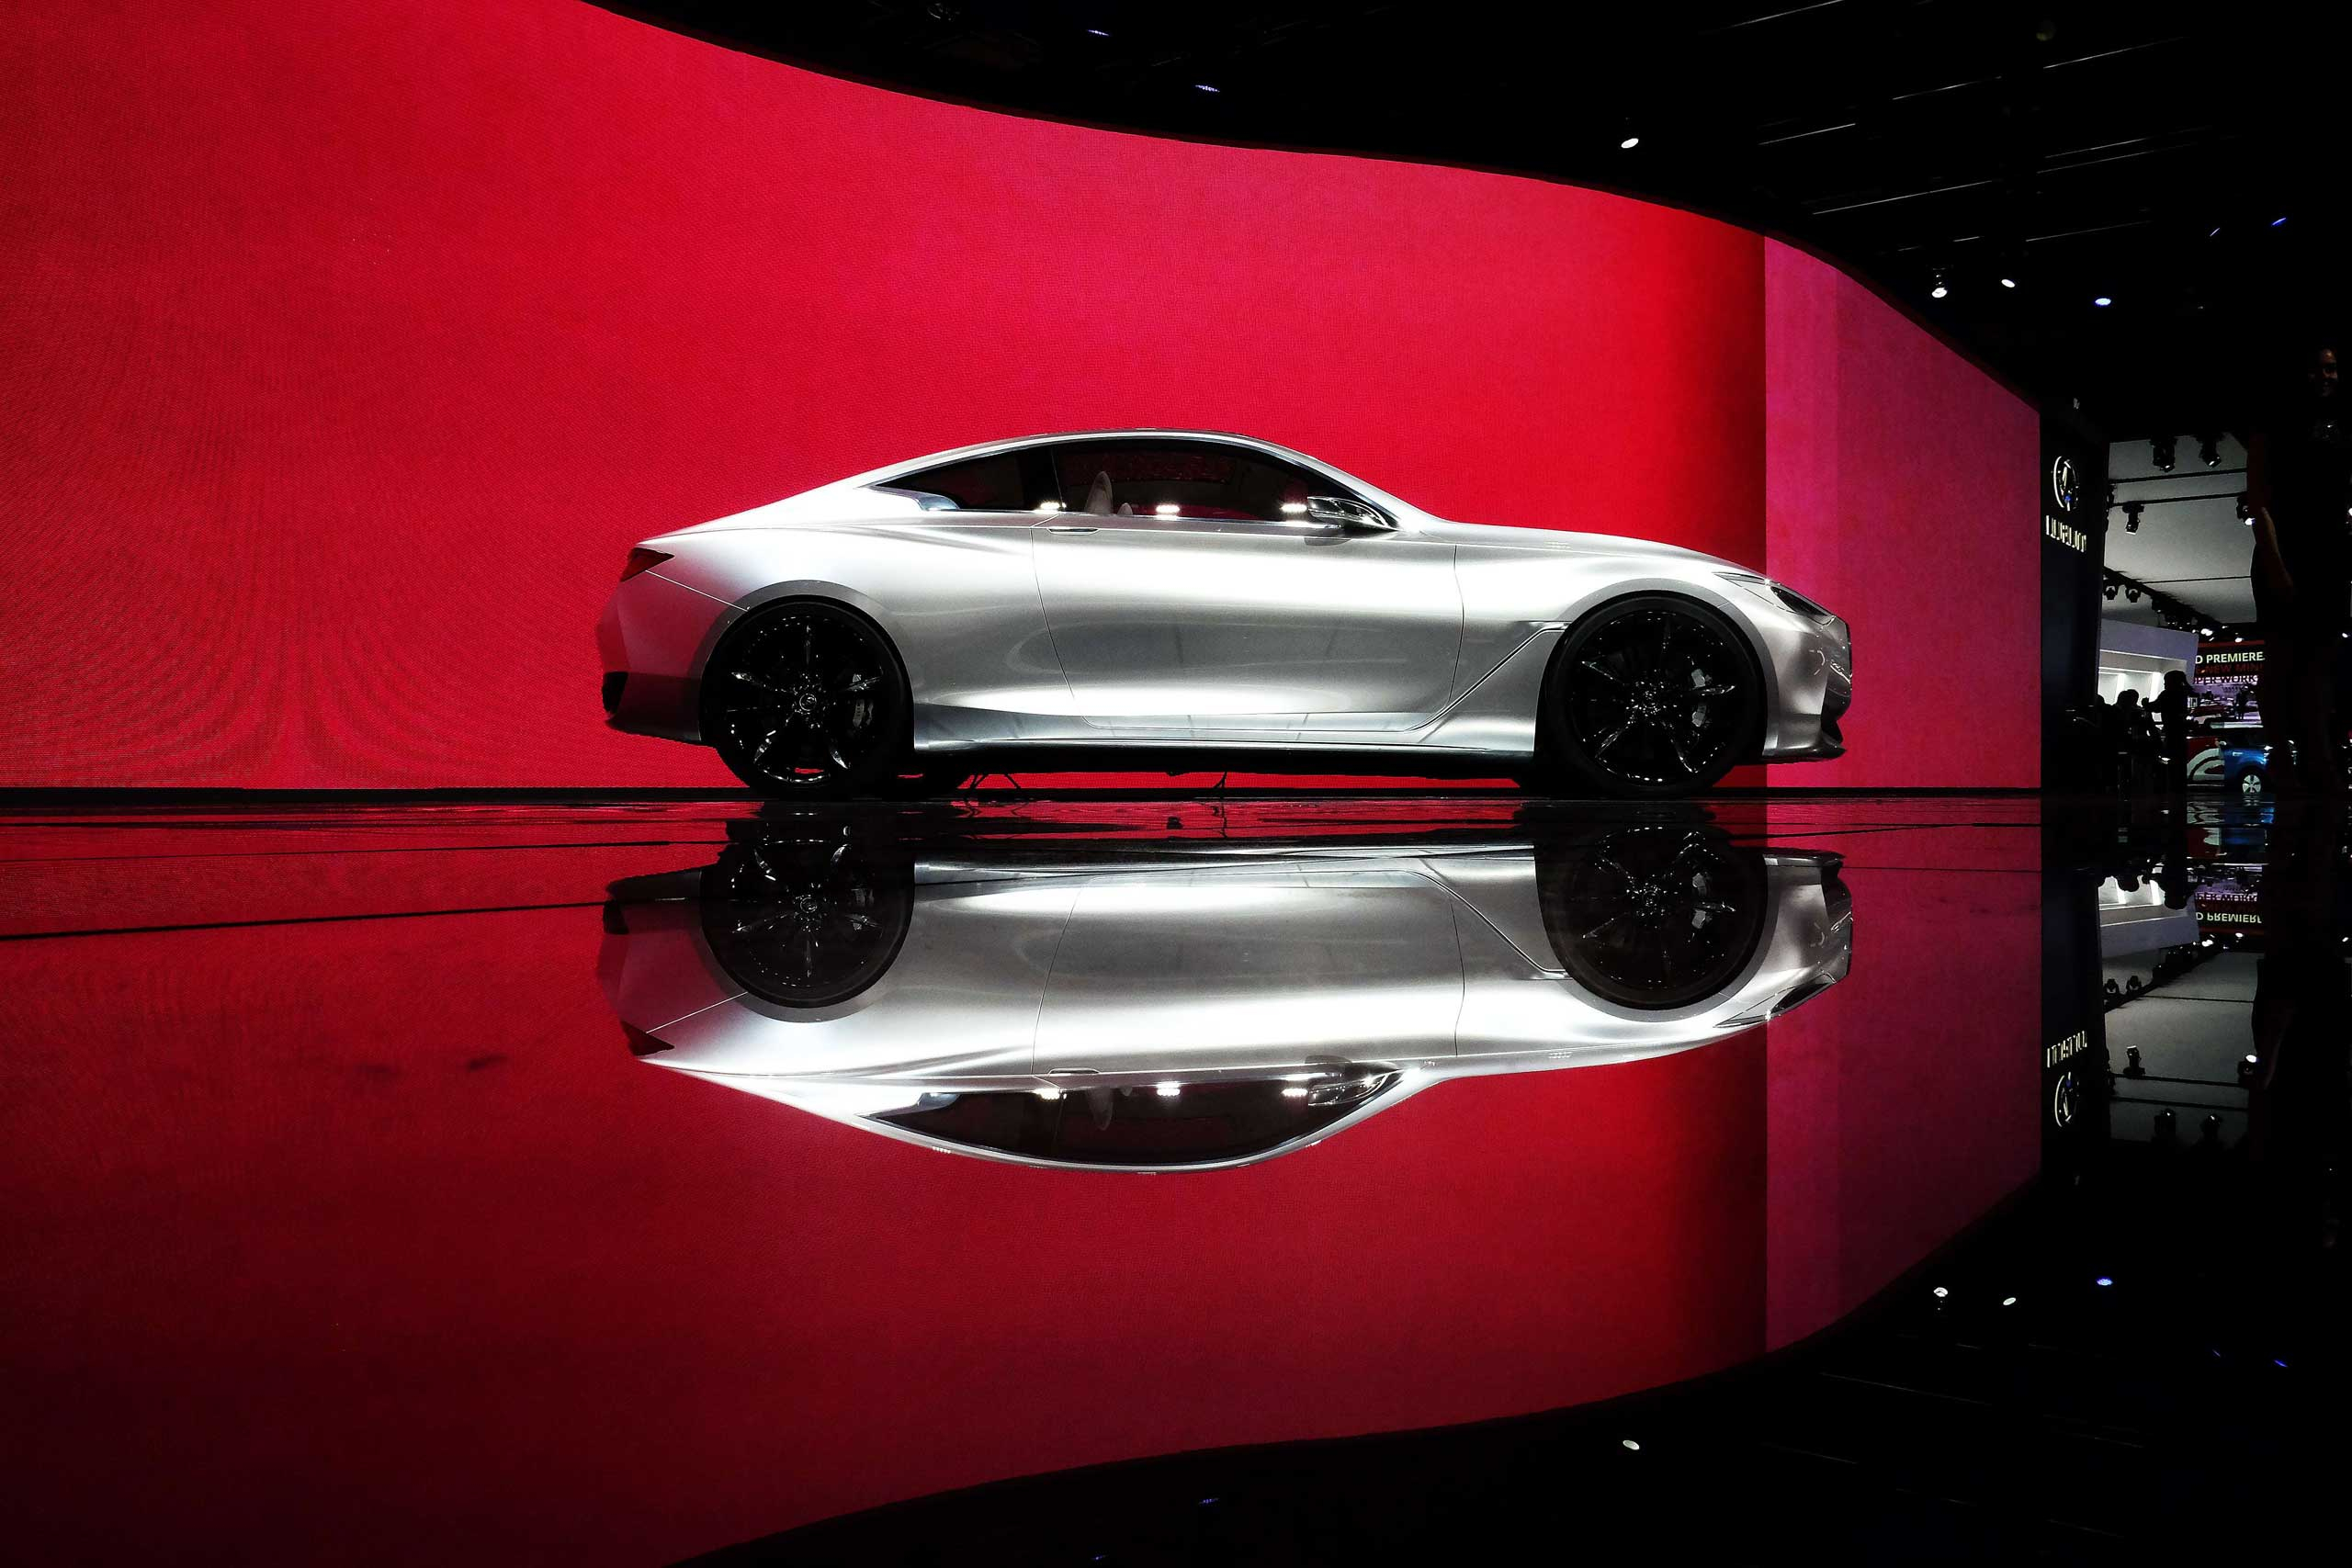 The Infinity Q60 concept car is displayed during the press preview on Jan. 13, 2015 in Detroit.